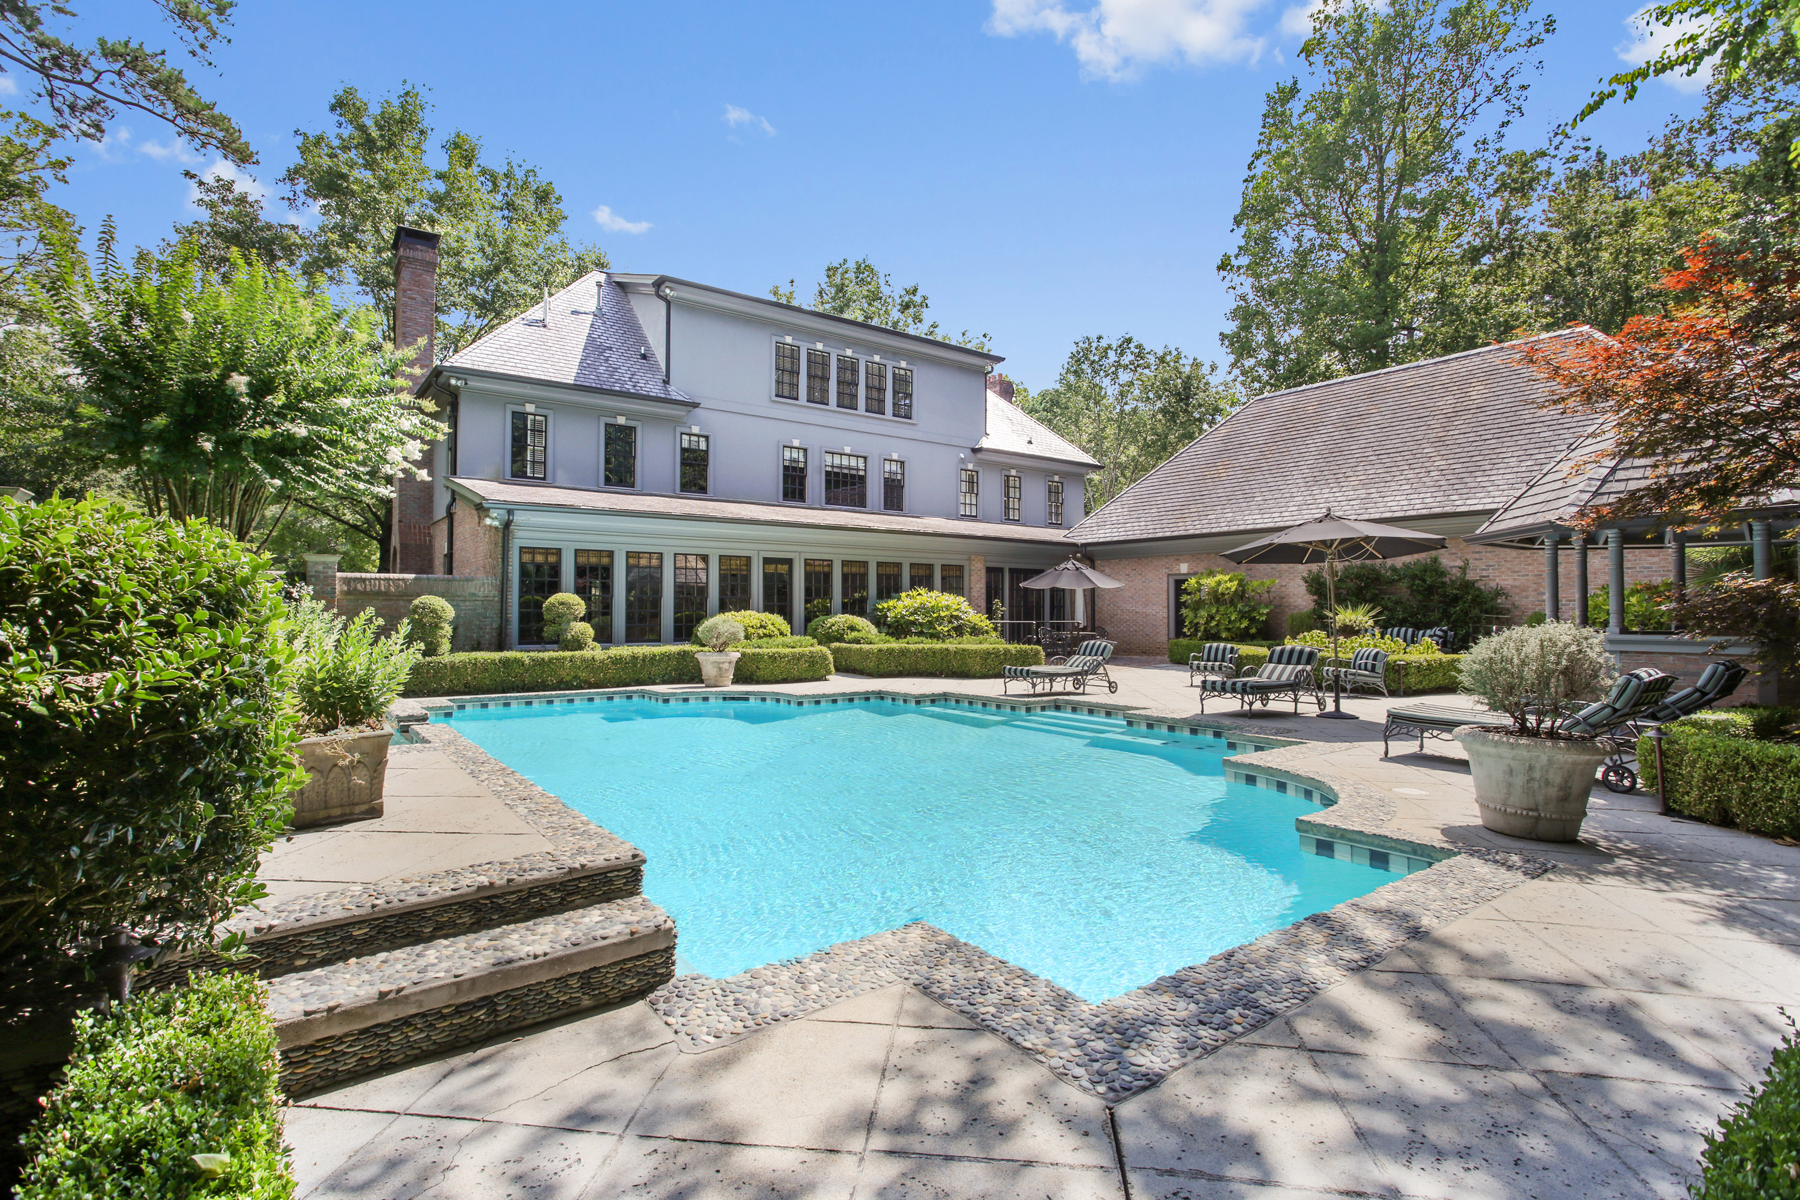 Single Family Home for Sale at Sophisticated Home In Heart Of Buckhead 730 Conway Glen Drive NW Buckhead, Atlanta, Georgia, 30327 United States